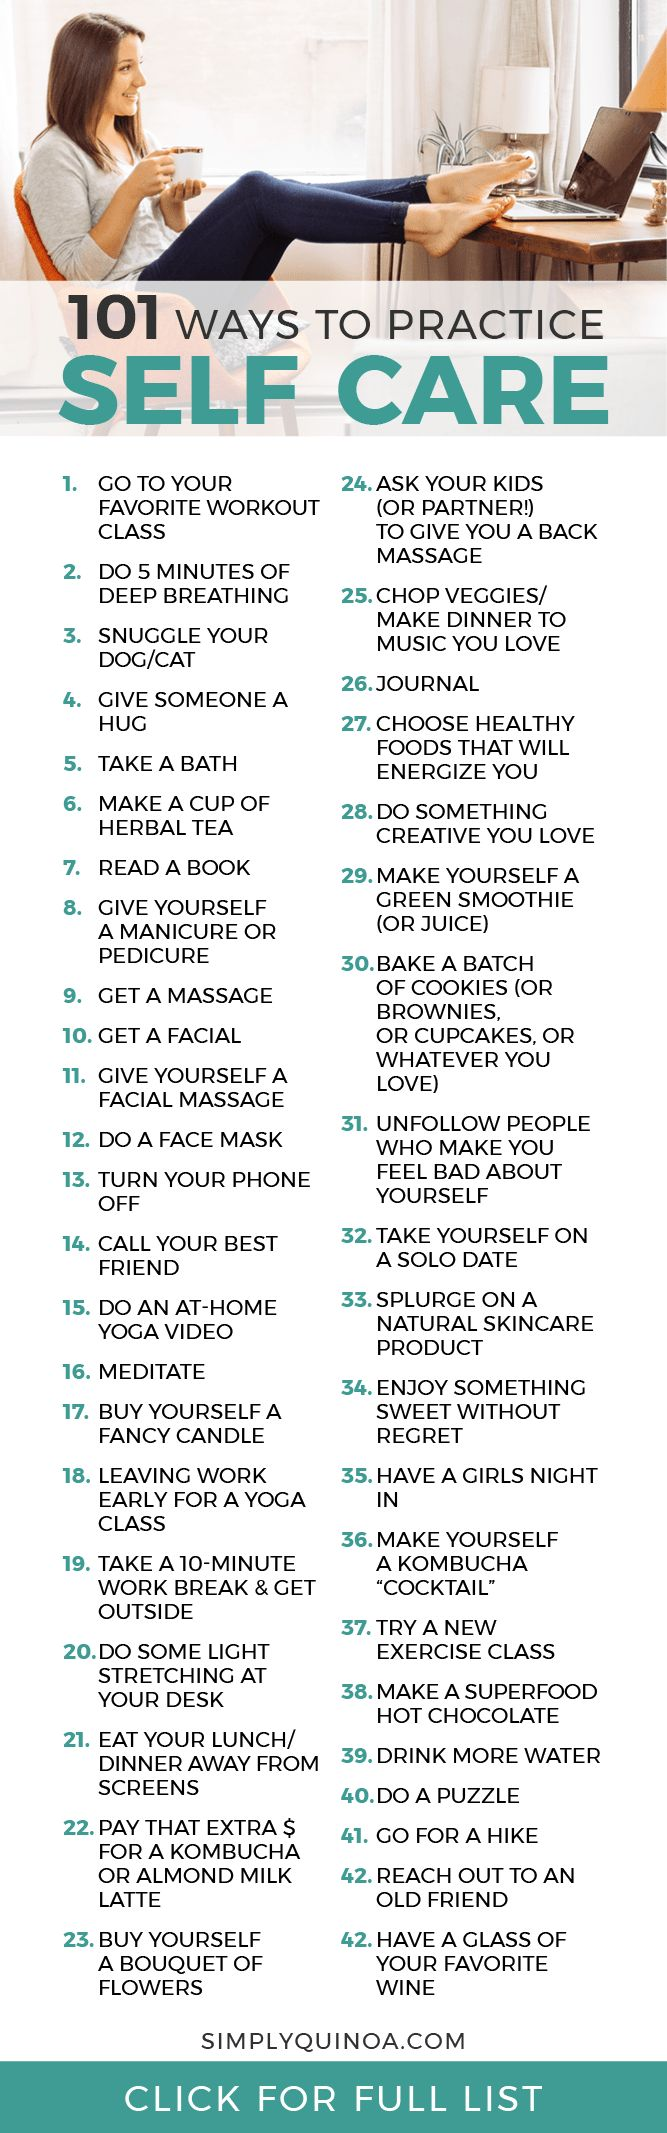 What is self care? Learn why it's important PLUS get 101 Ways to Practice Self-Care for yourself! Simply Quinoa #selfcare #simplyquinoa #selfcaretips